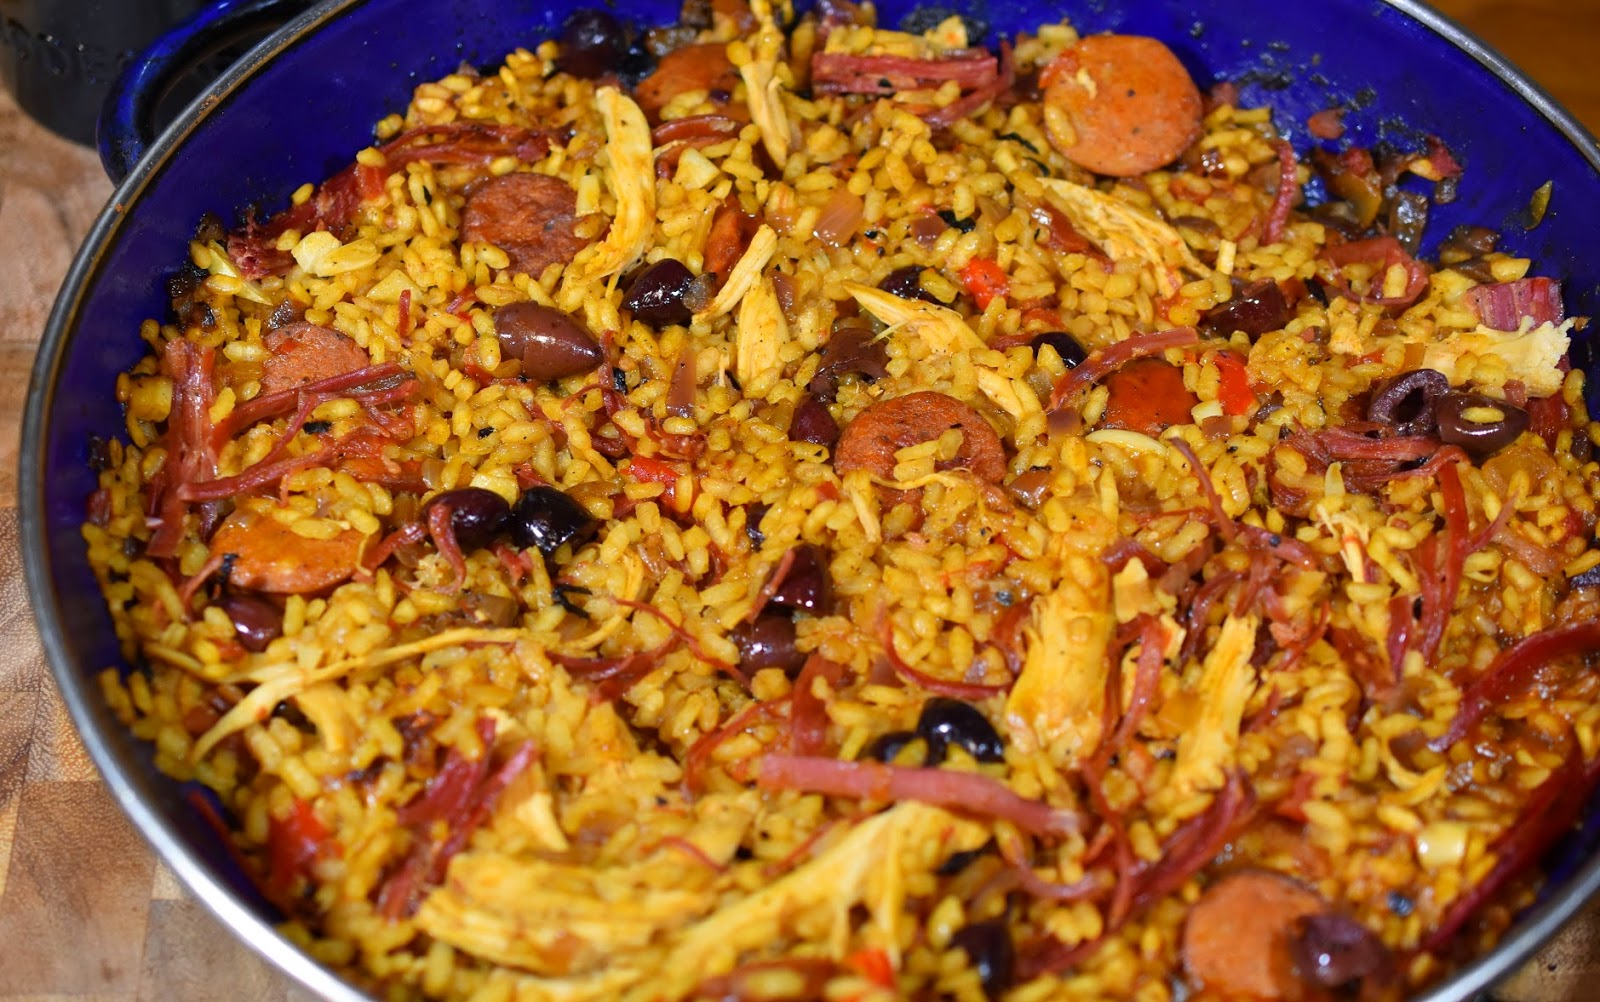 Chuck-it-all-in-there Paella